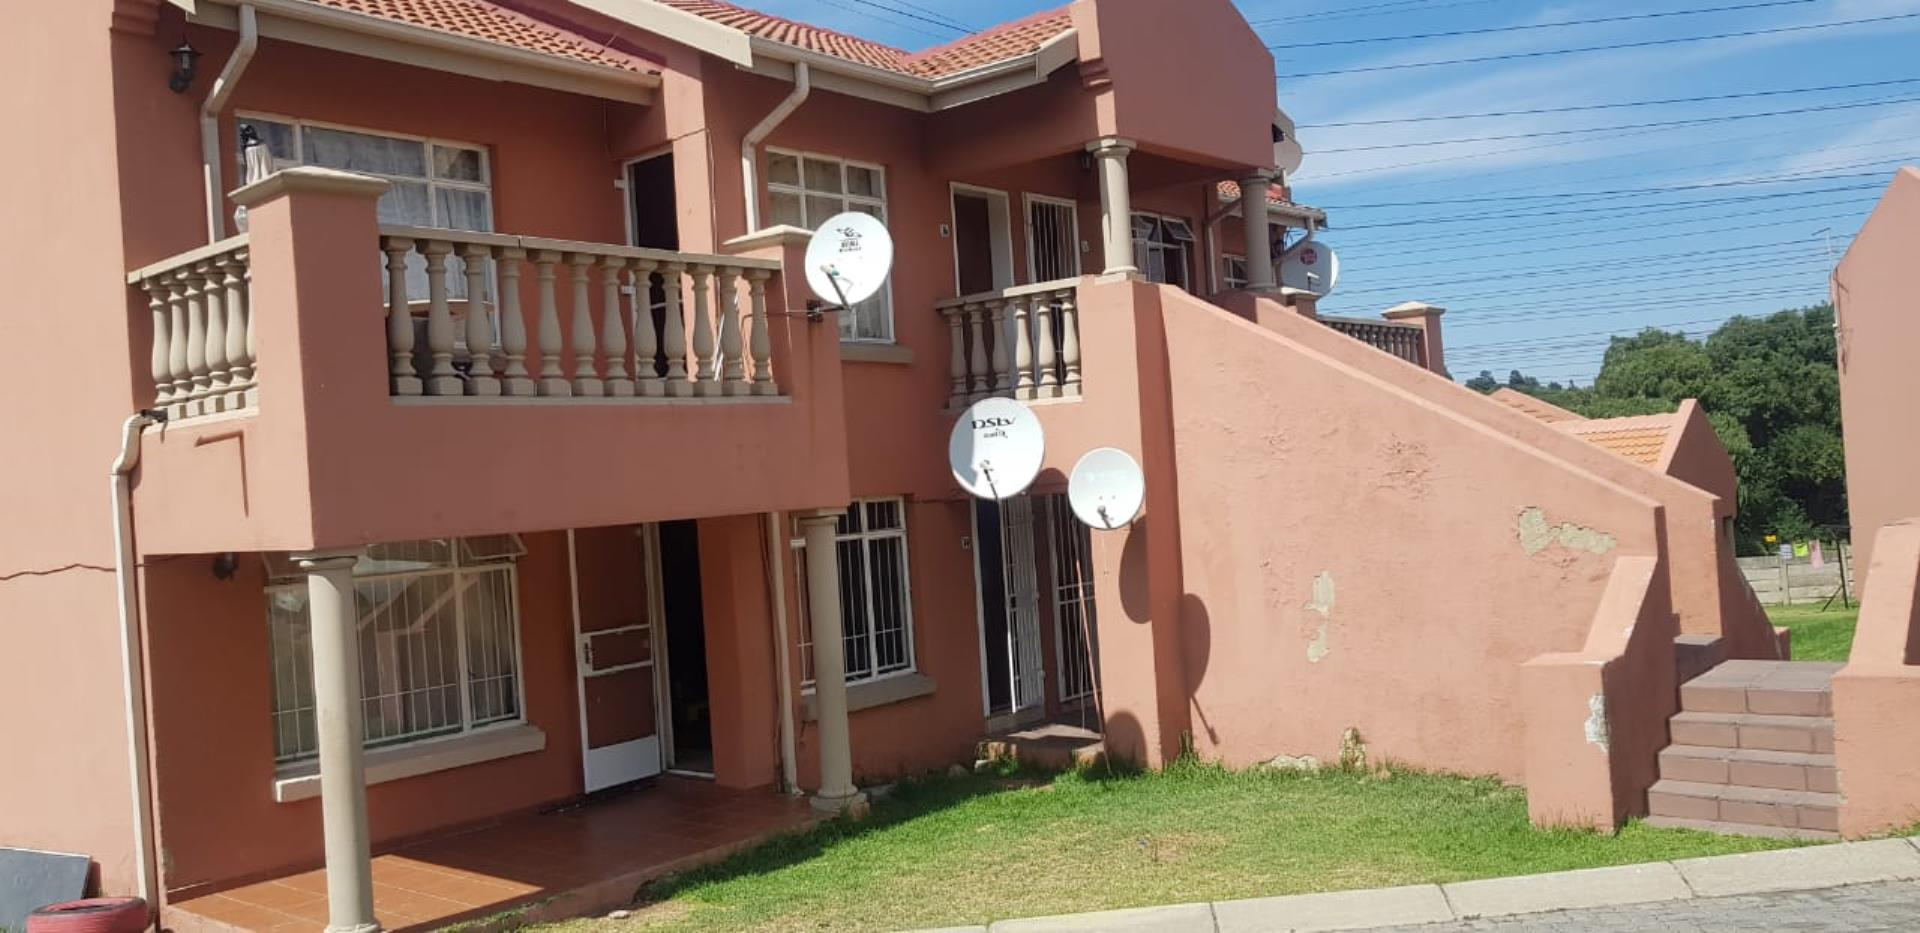 2 Bedroom  Apartment for Sale in Johannesburg - Gauteng